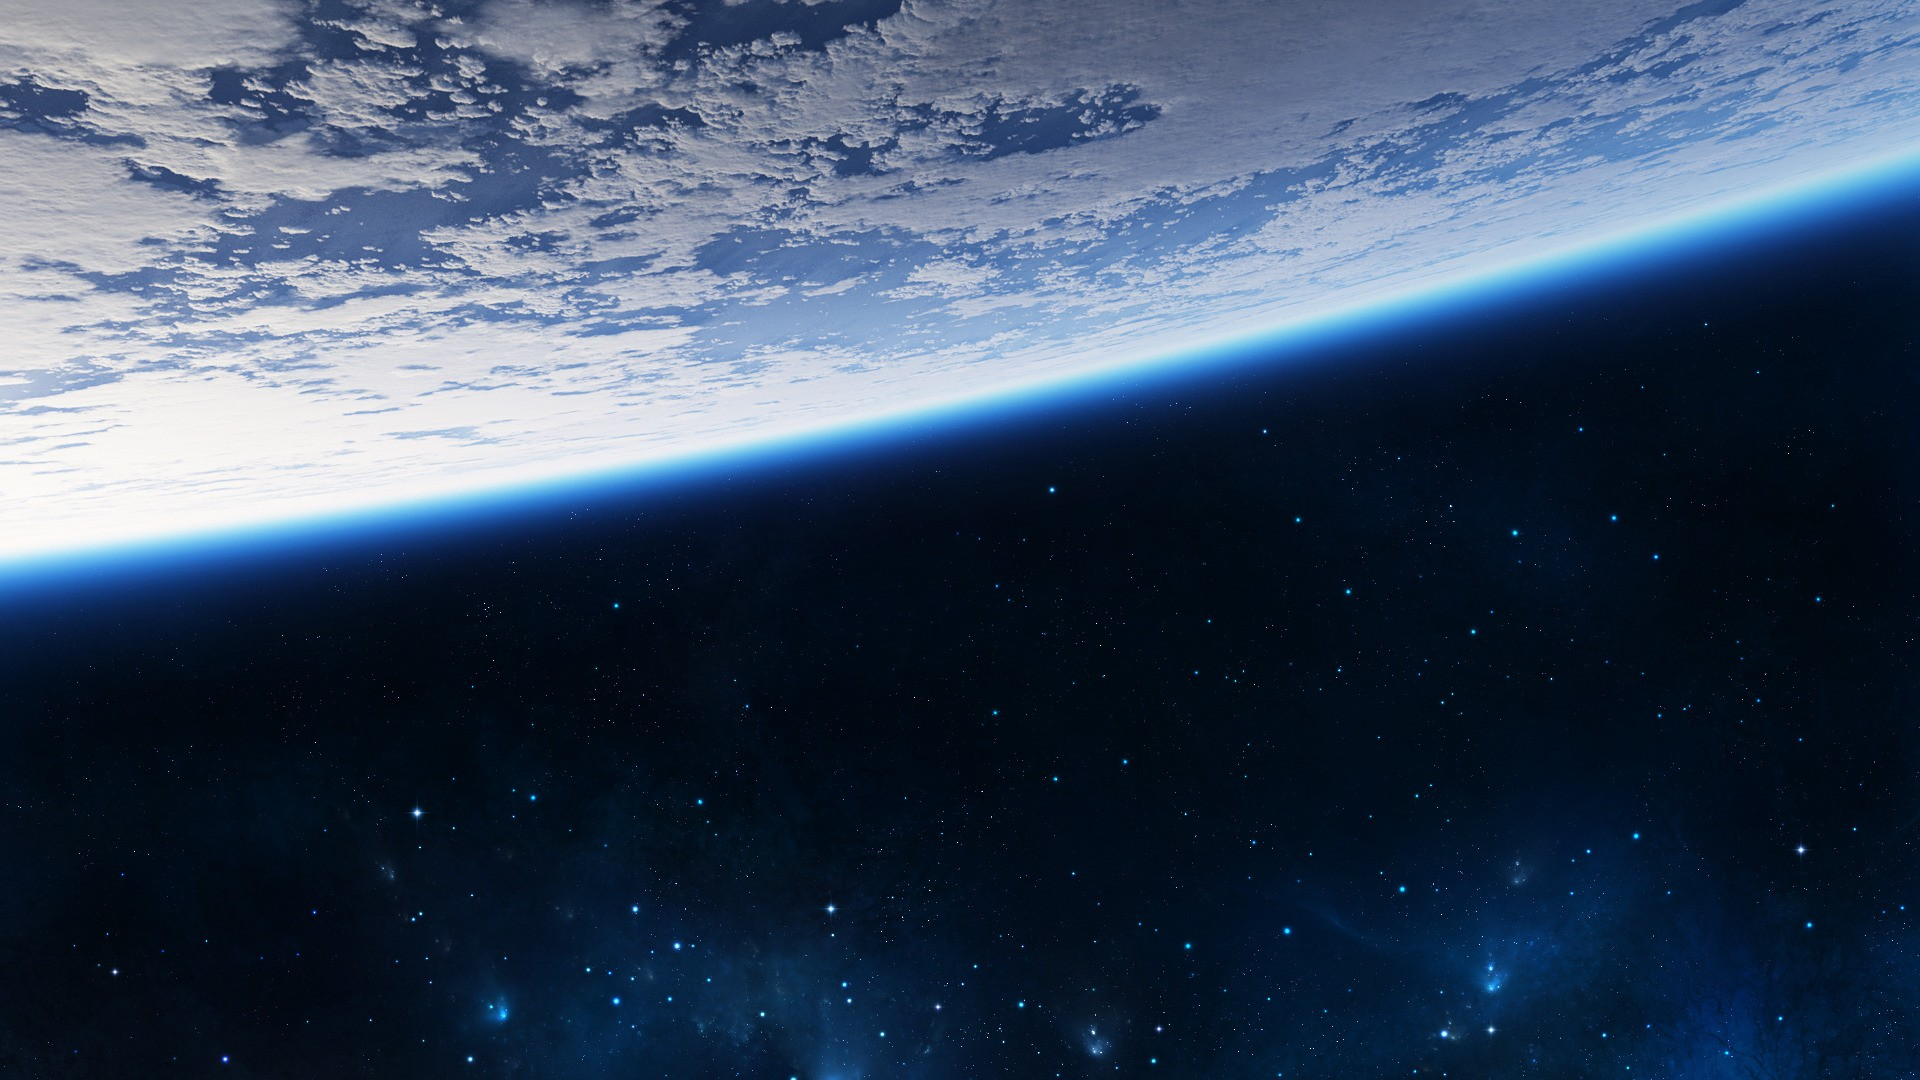 Download desktop wallpaper earth view from outer space download voltagebd Images